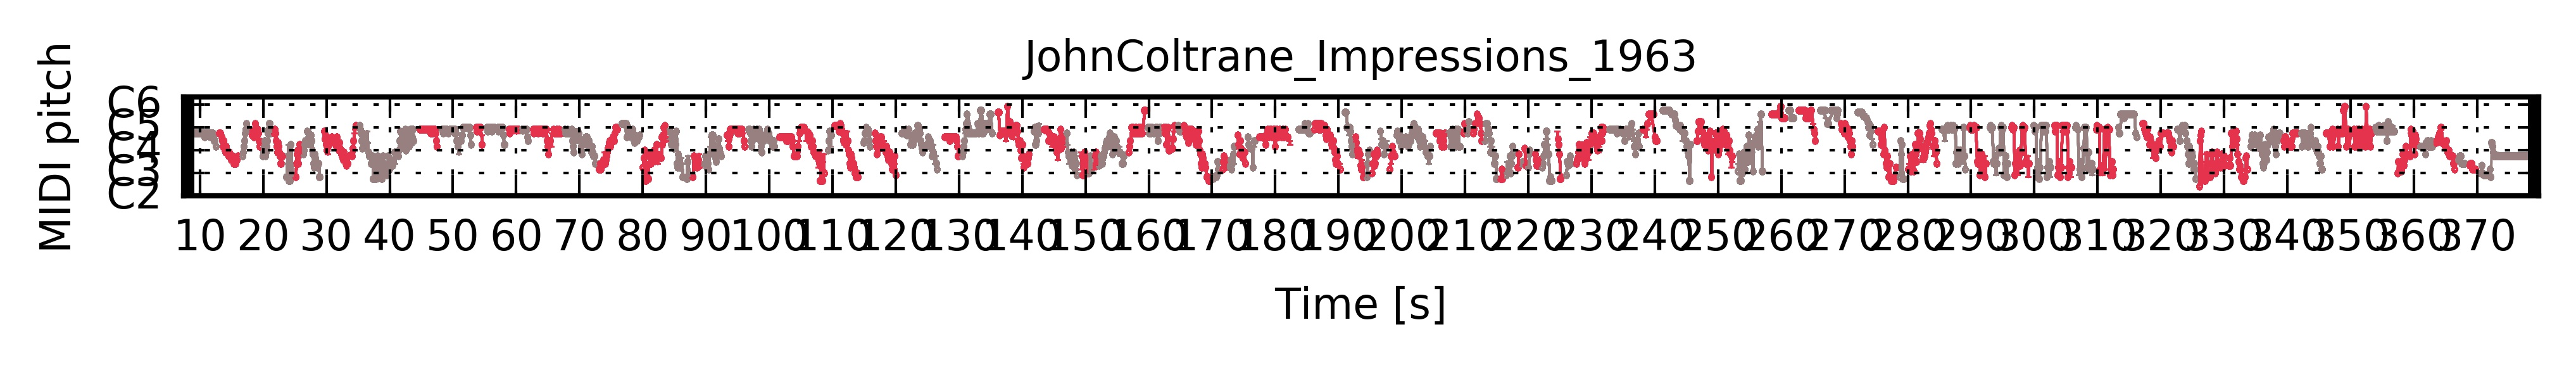 ../../_images/PianoRoll_JohnColtrane_Impressions_1963.jpg